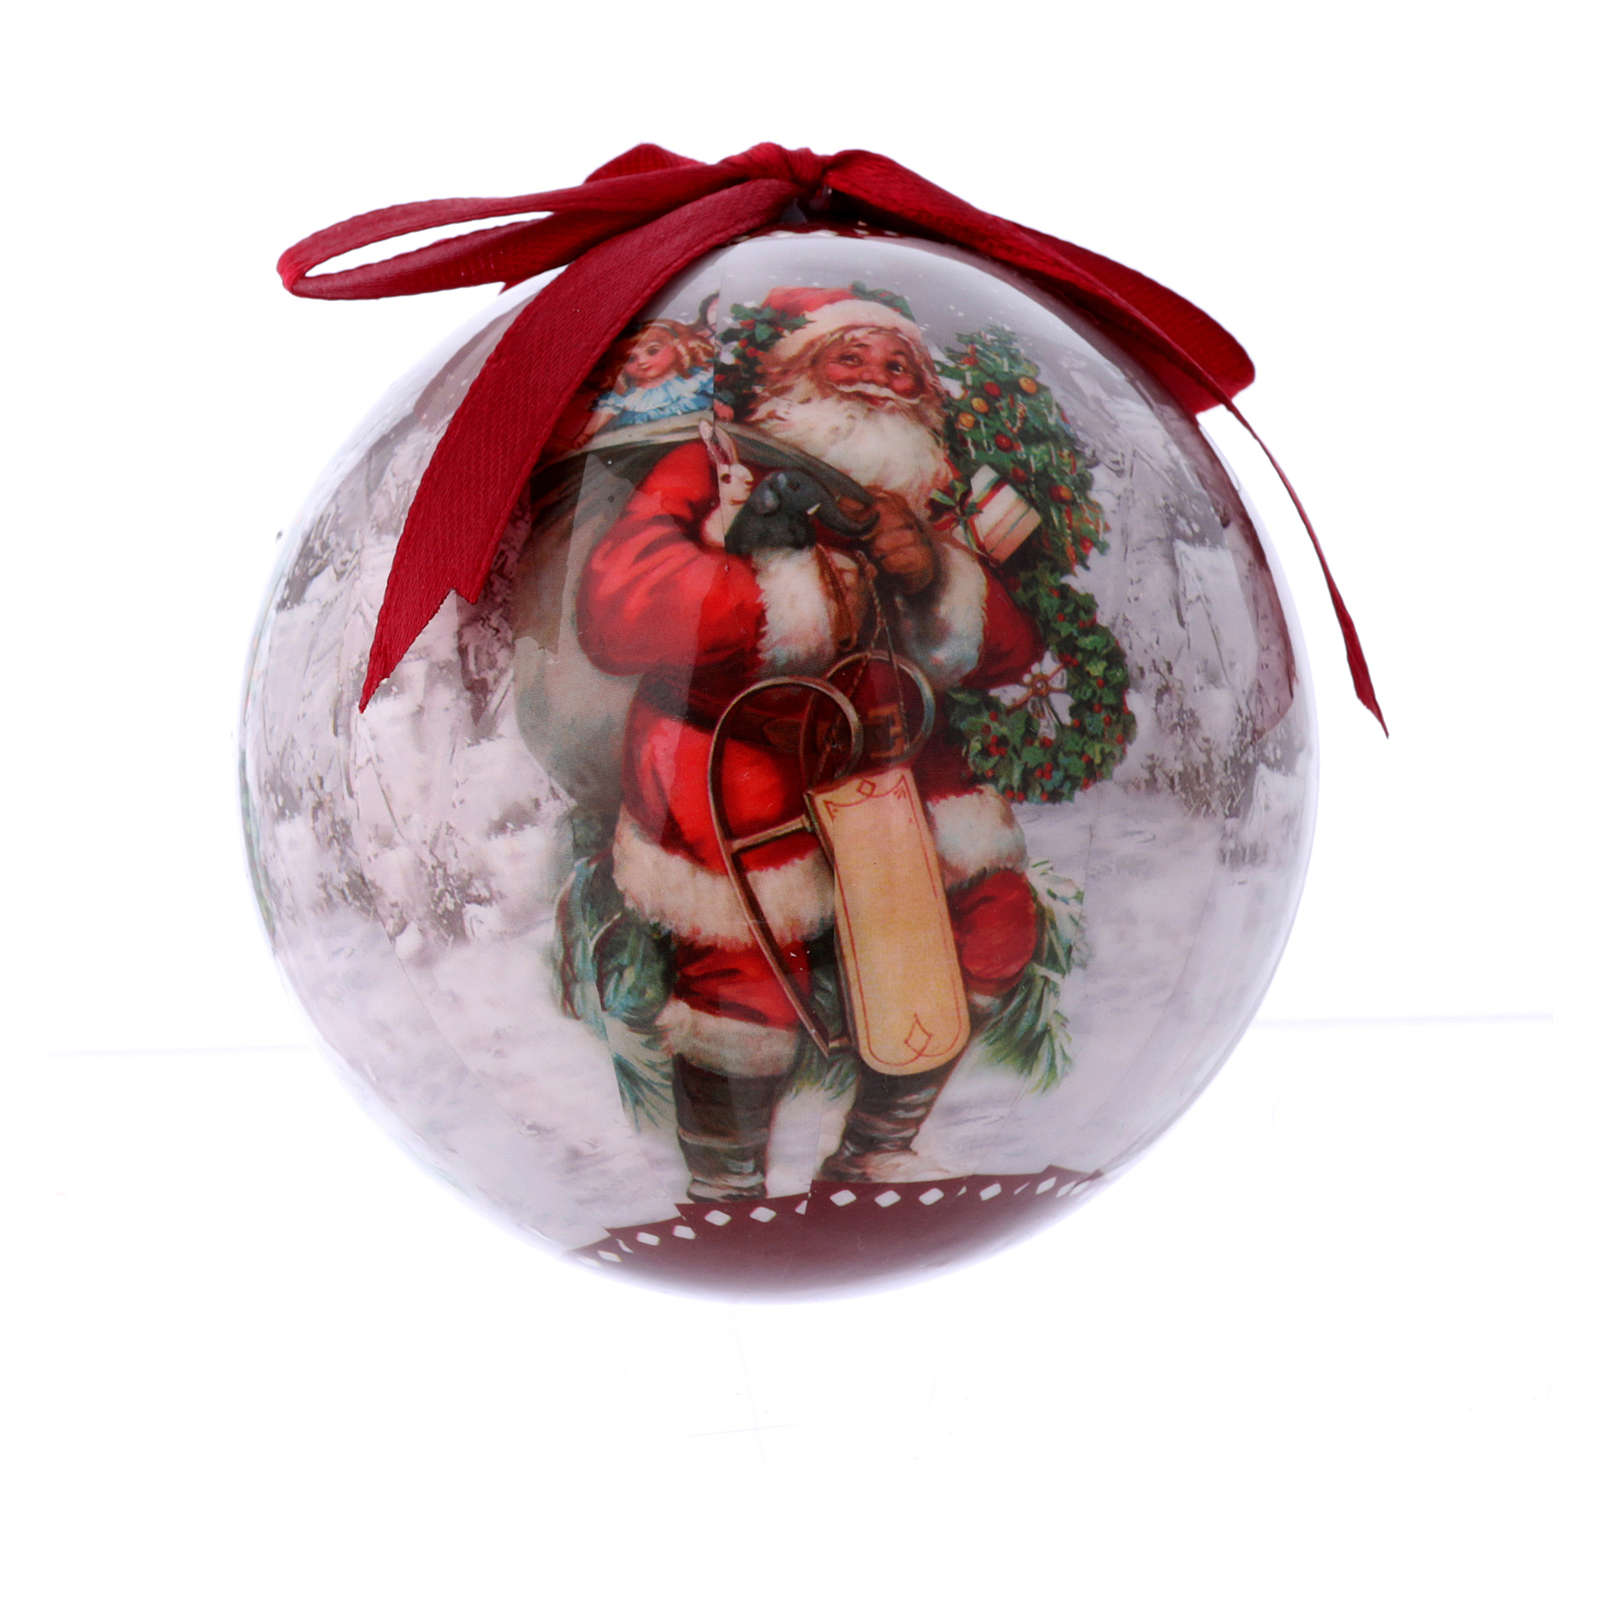 Christmas tree bauble Santa Claus image 75 mm 4